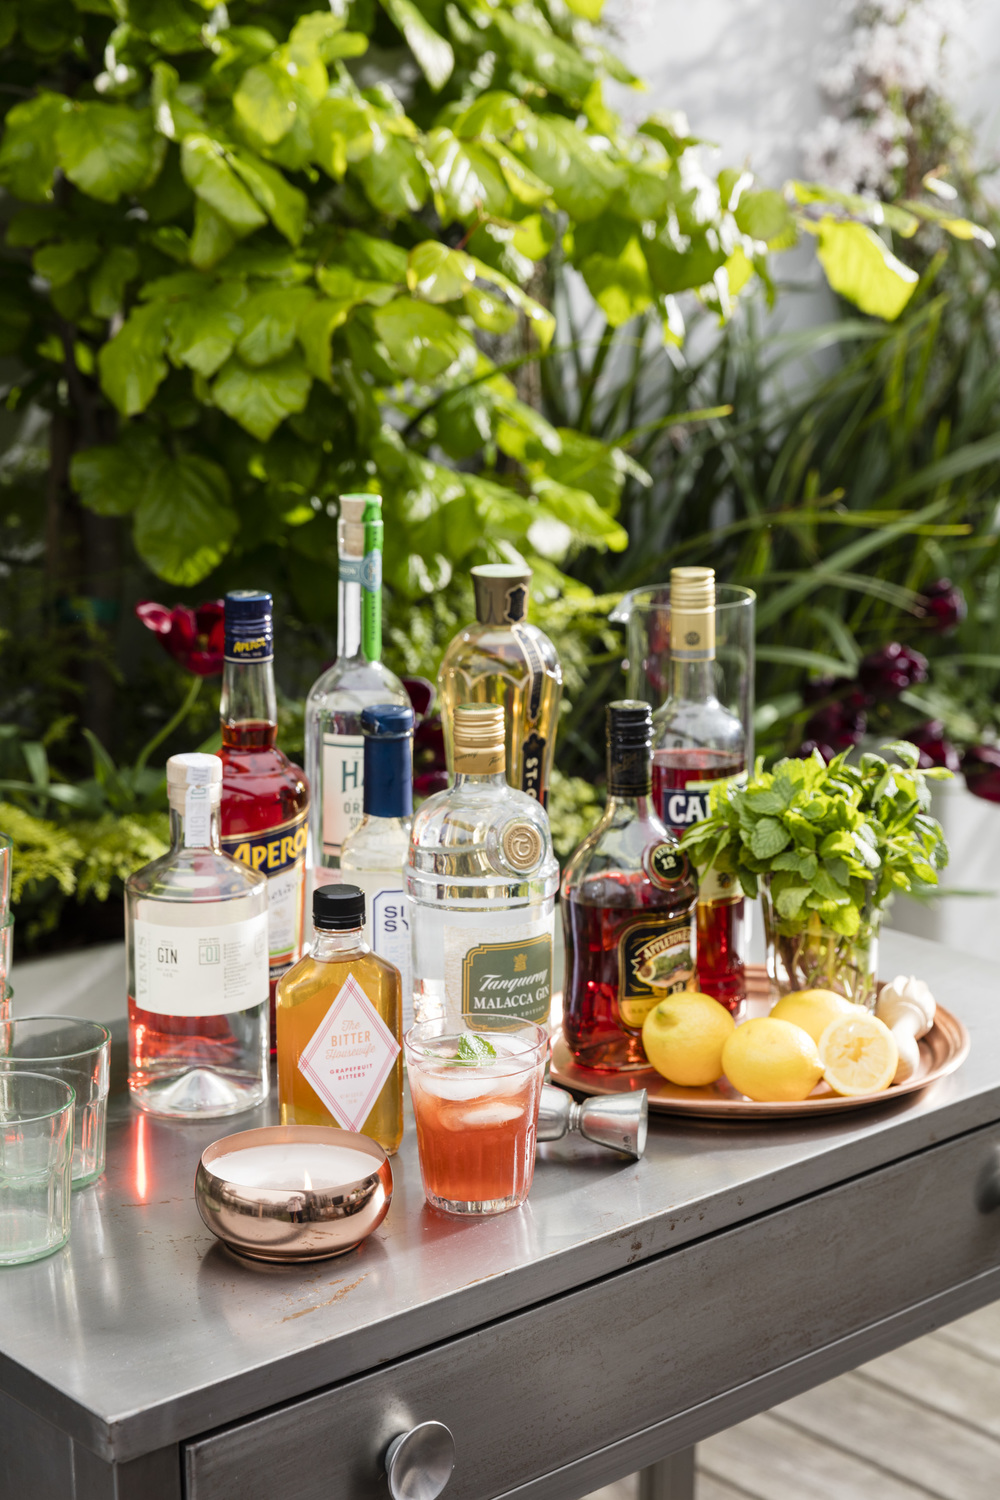 Cocktail Garden Whether it's a basil mojito, a Bloody Mary with fresh cherry tomatoes, or a Meyer lemon and sage drop, it's official: Cocktails have crossed into the culinary world. Our container garden highlights all of the botanicals that go into making great cocktails, from specialty citrus—the base for many of our favorite liqueurs—to all the goodies you need to mix, muddle, and embellish your beverage of choice.  Design: Homestead Design Collective Special Thanks To: Four Winds Growers, Sonoma Materials